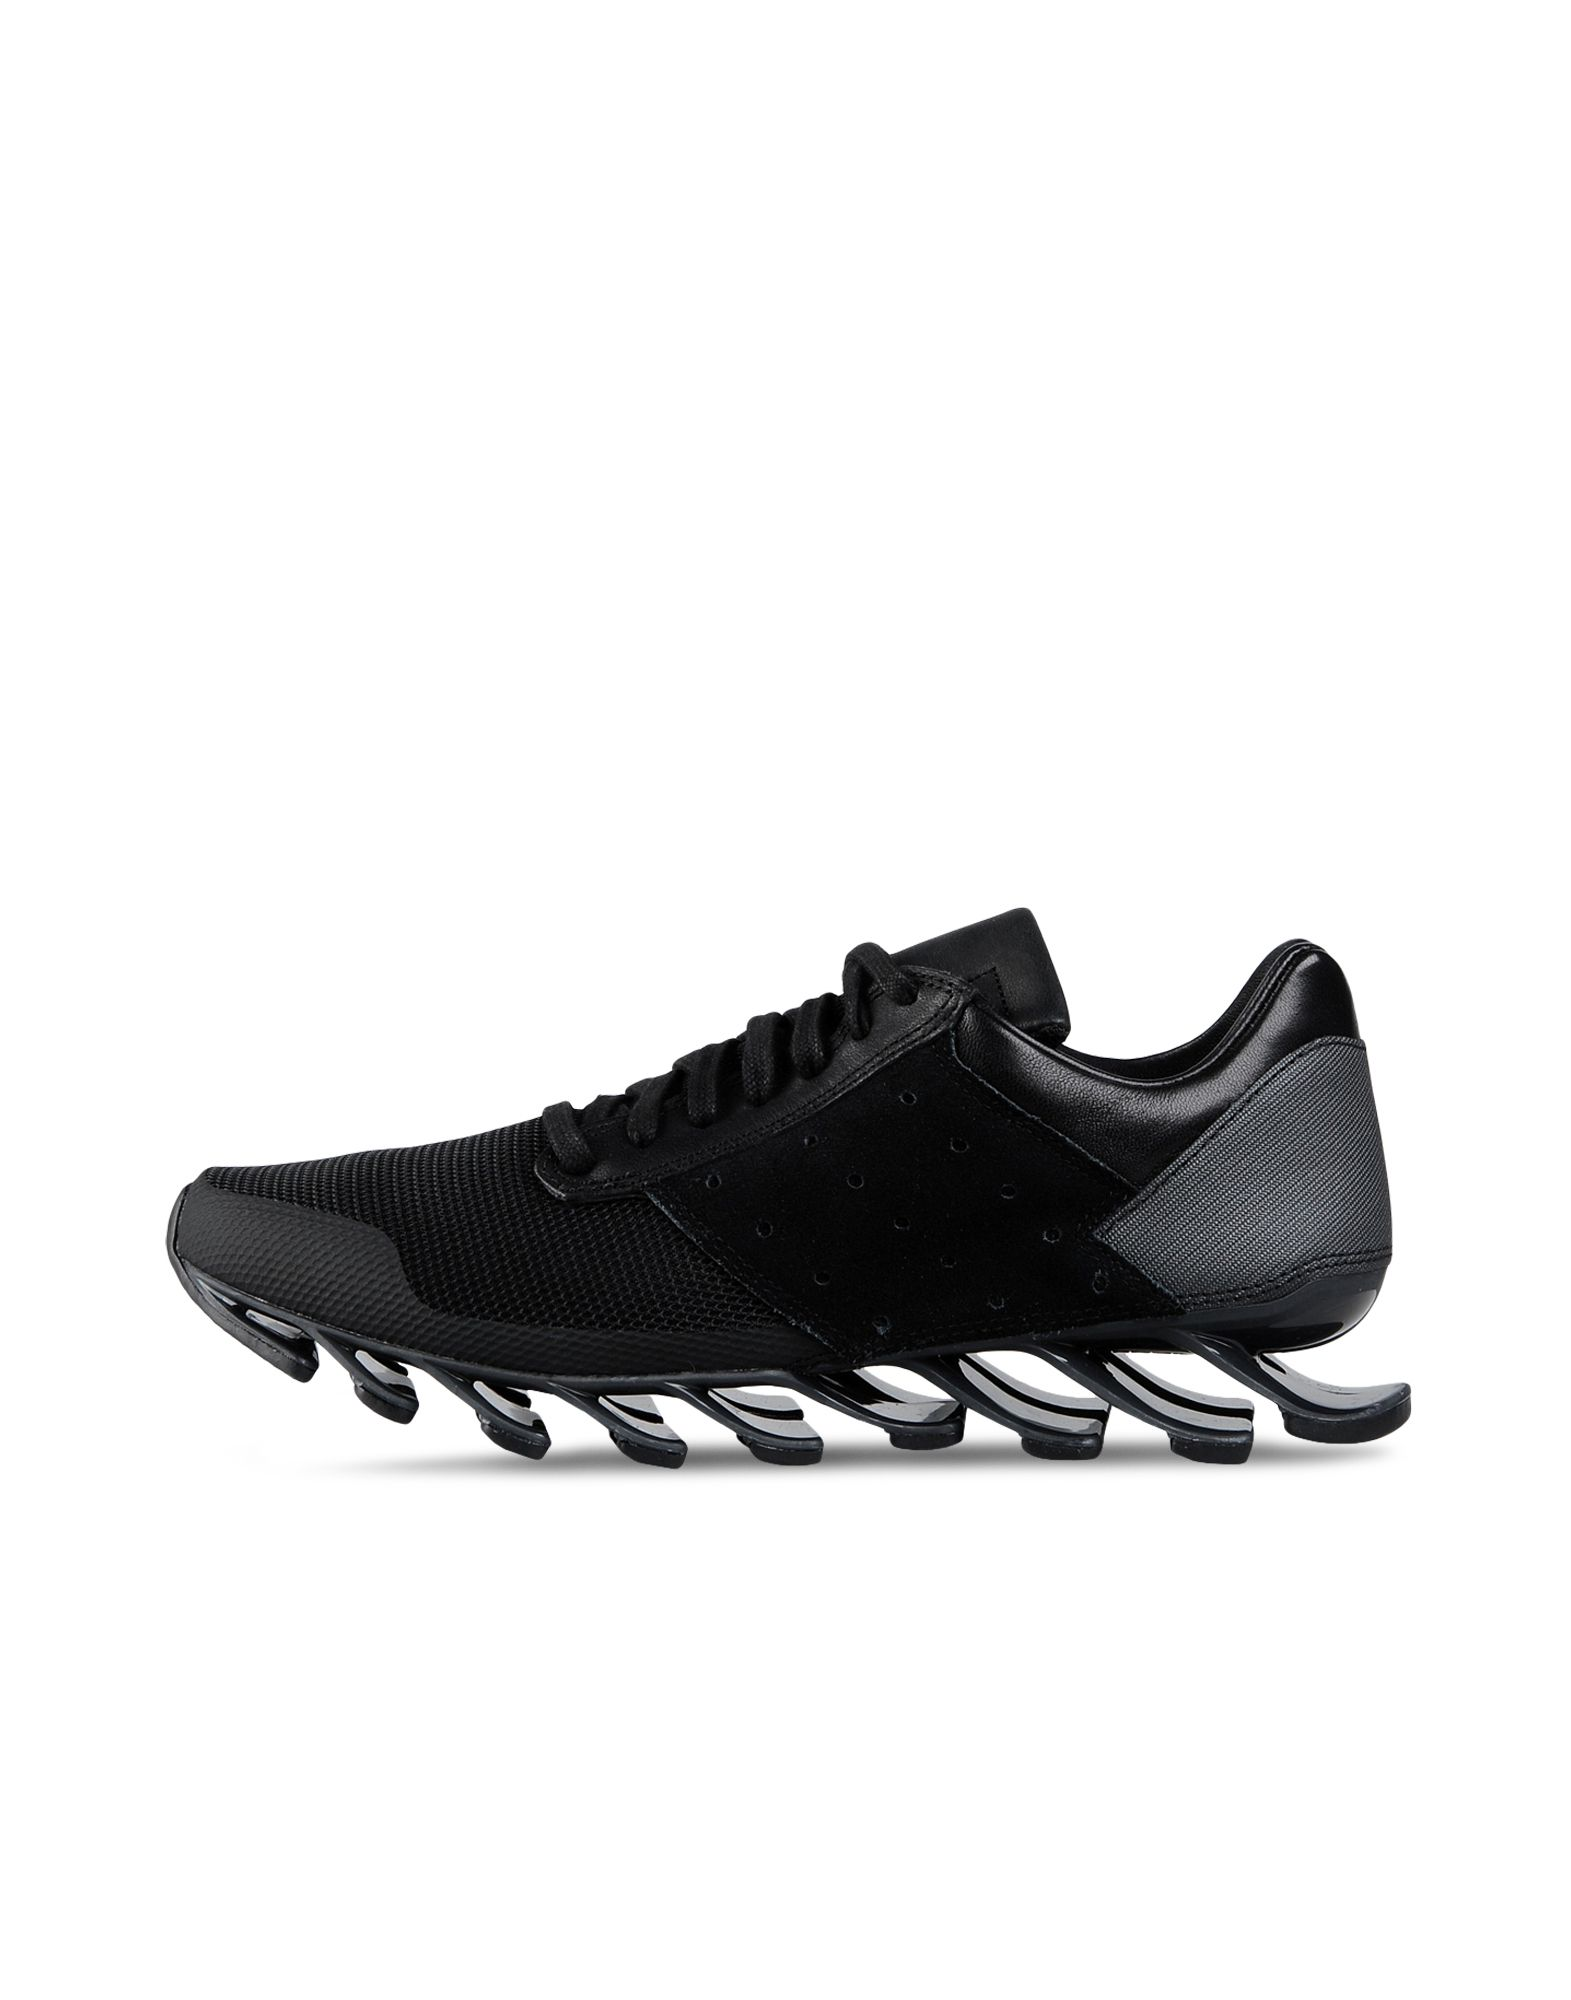 outlet store f1251 2b0c7 ... RICK OWENS Rick Owens Springblade Lo Trainers E ...